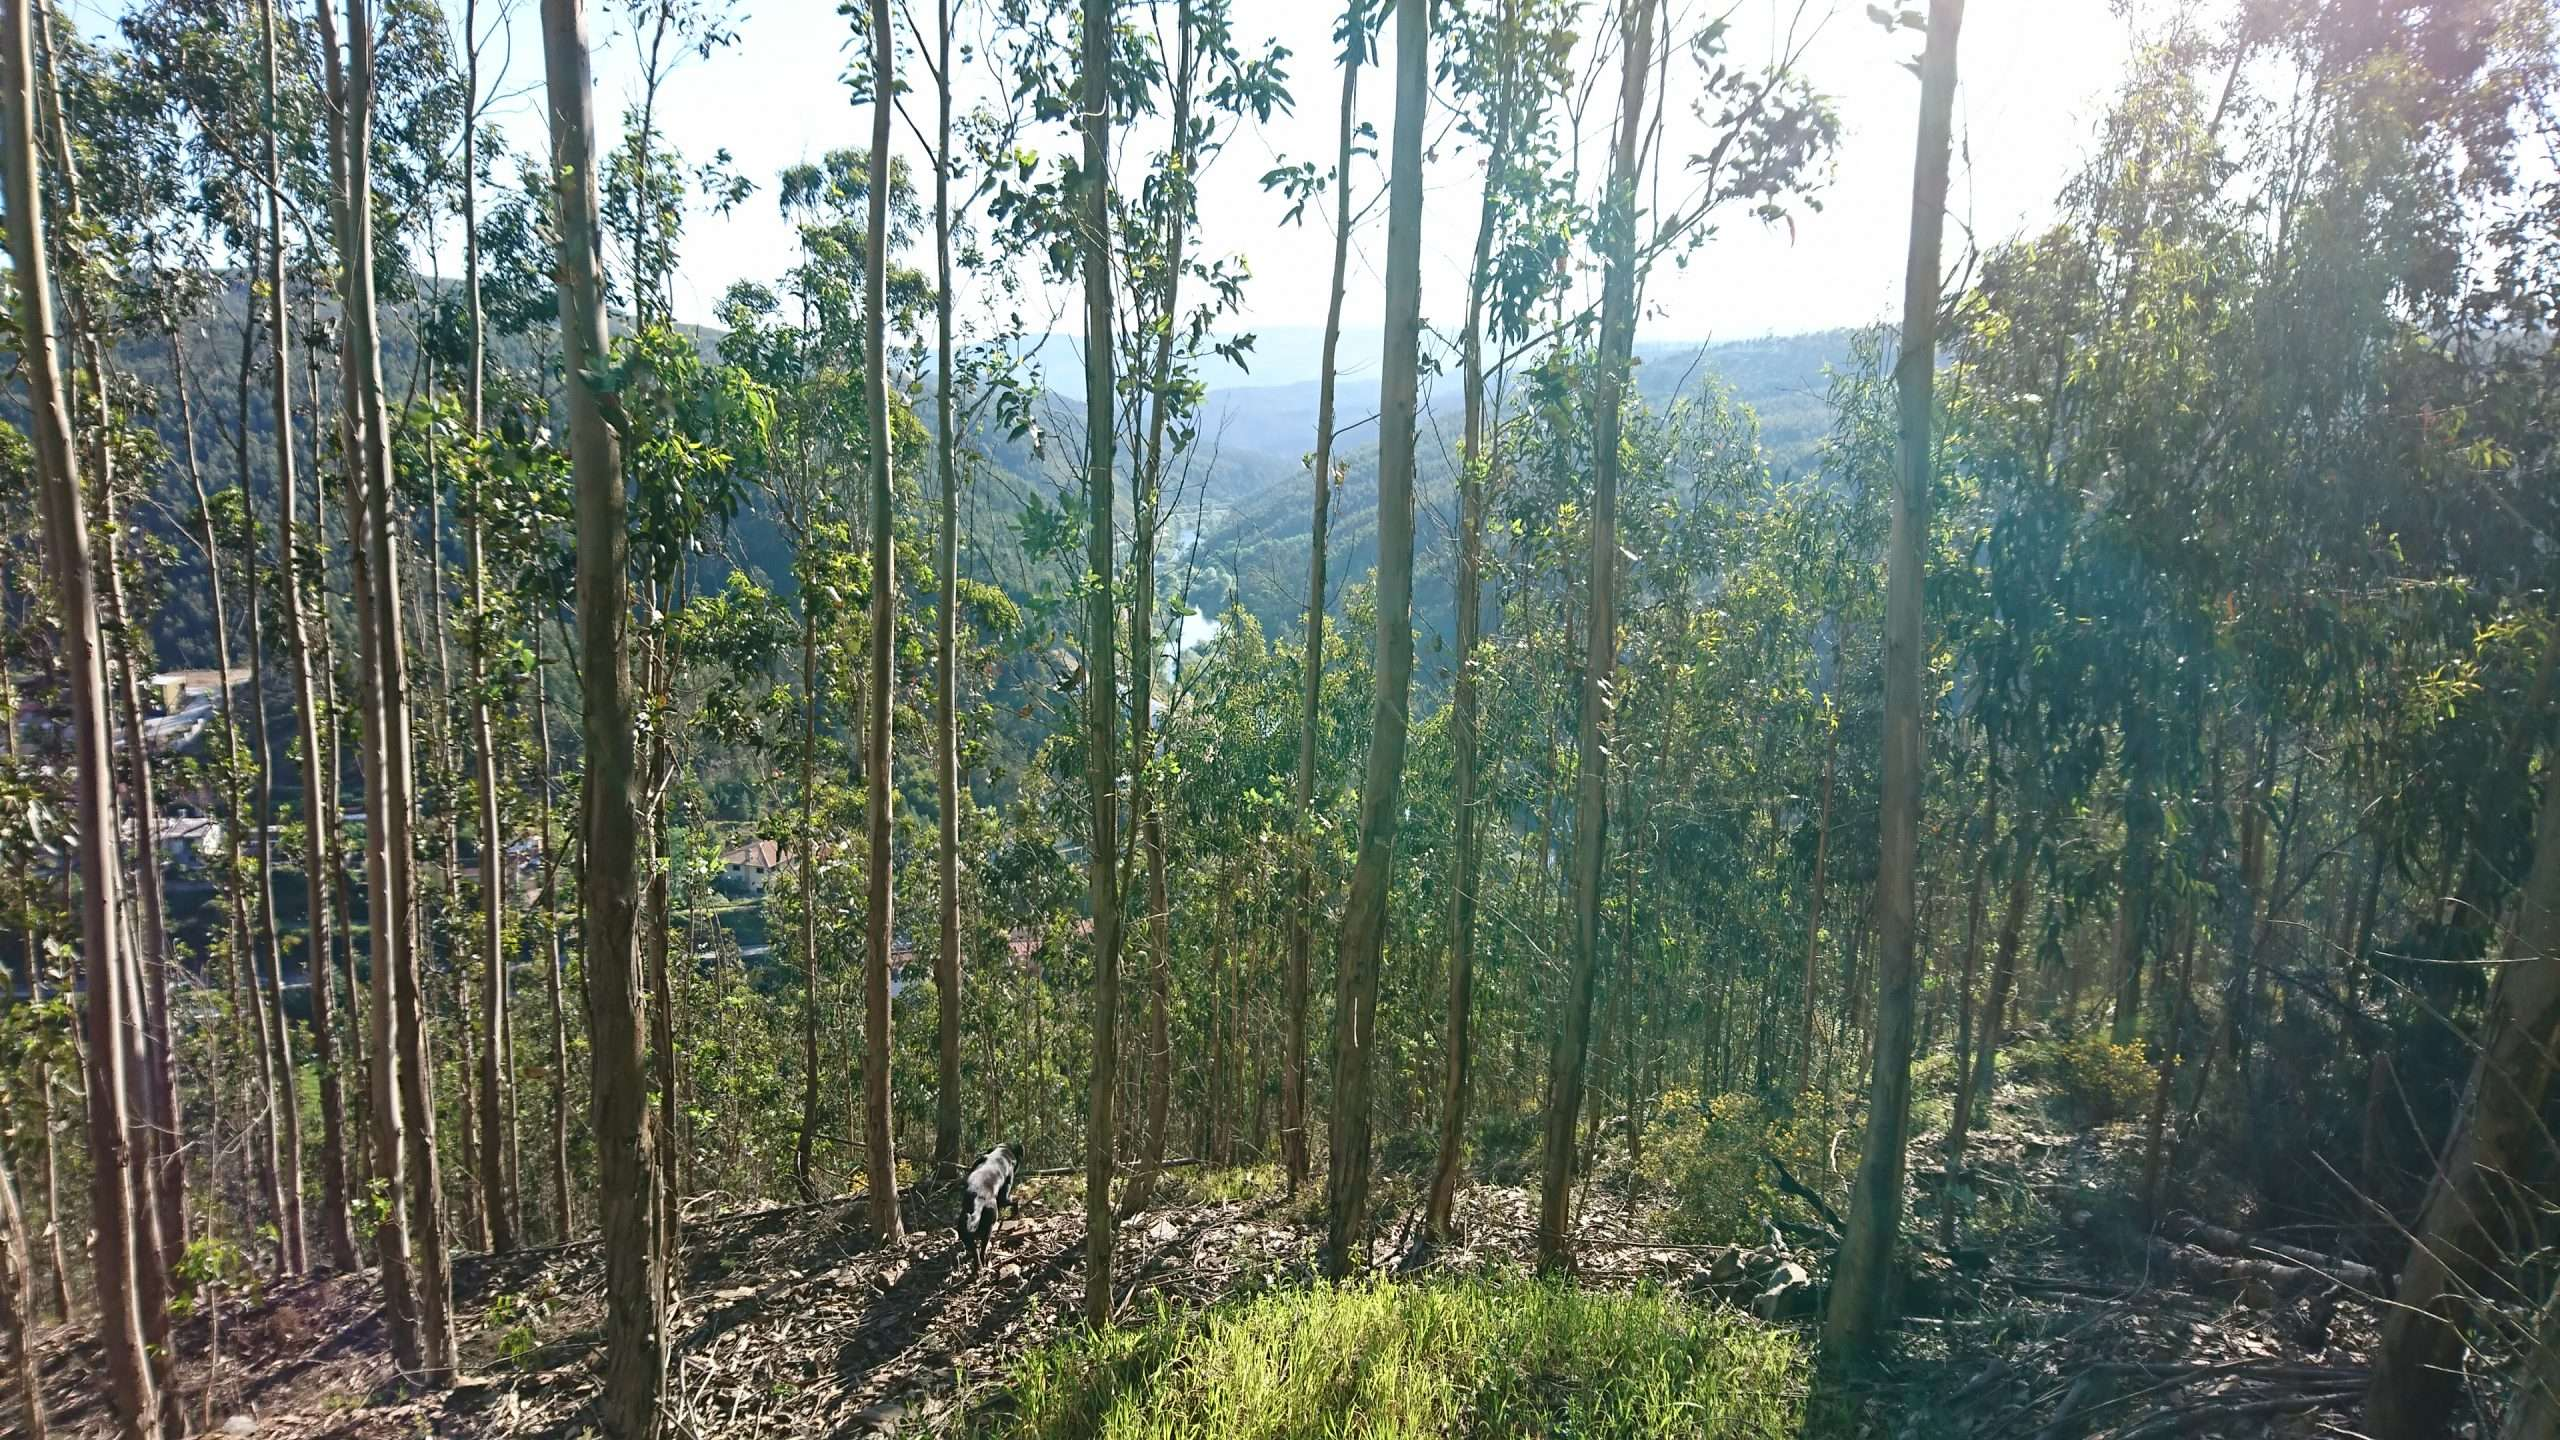 We are up the green mountain, looking between the eucalyptus trees down into the valley you can see the river Vouga. We walked up here with Olley our therapist dog. He is getting exercise as well as us.